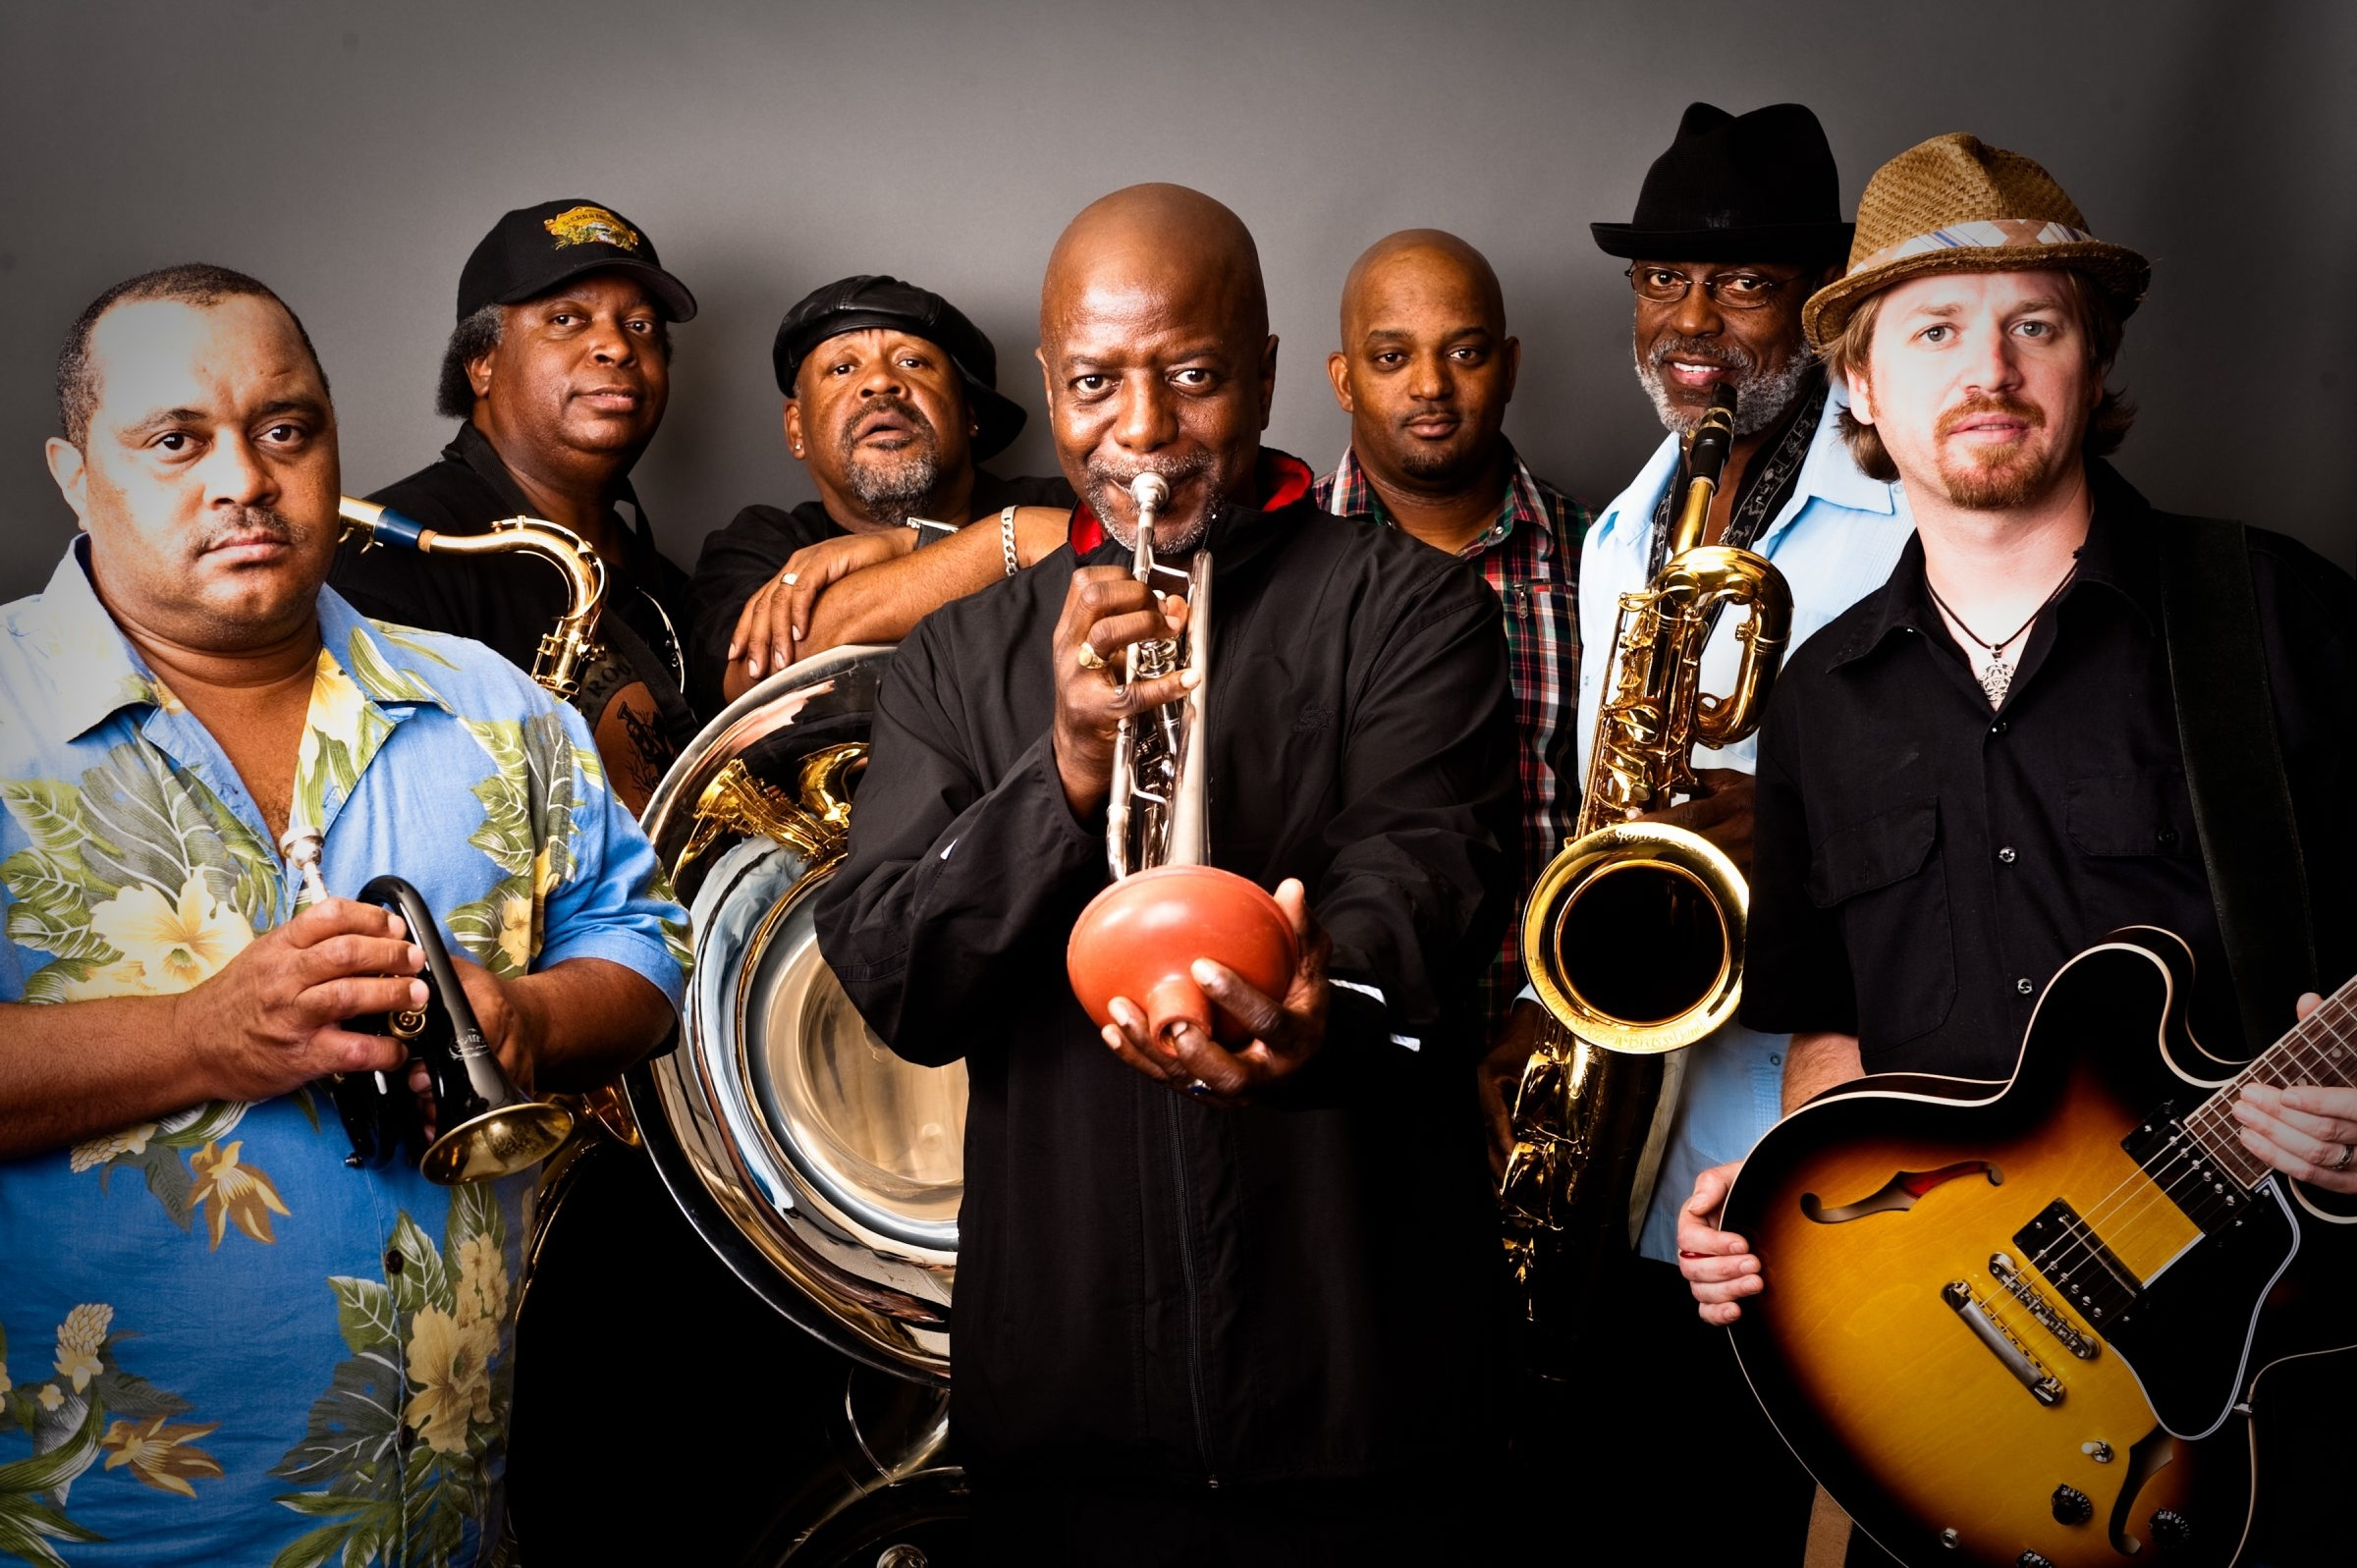 The Dirty Dozen Band plays the Tralf Music Hall on Tuesday.